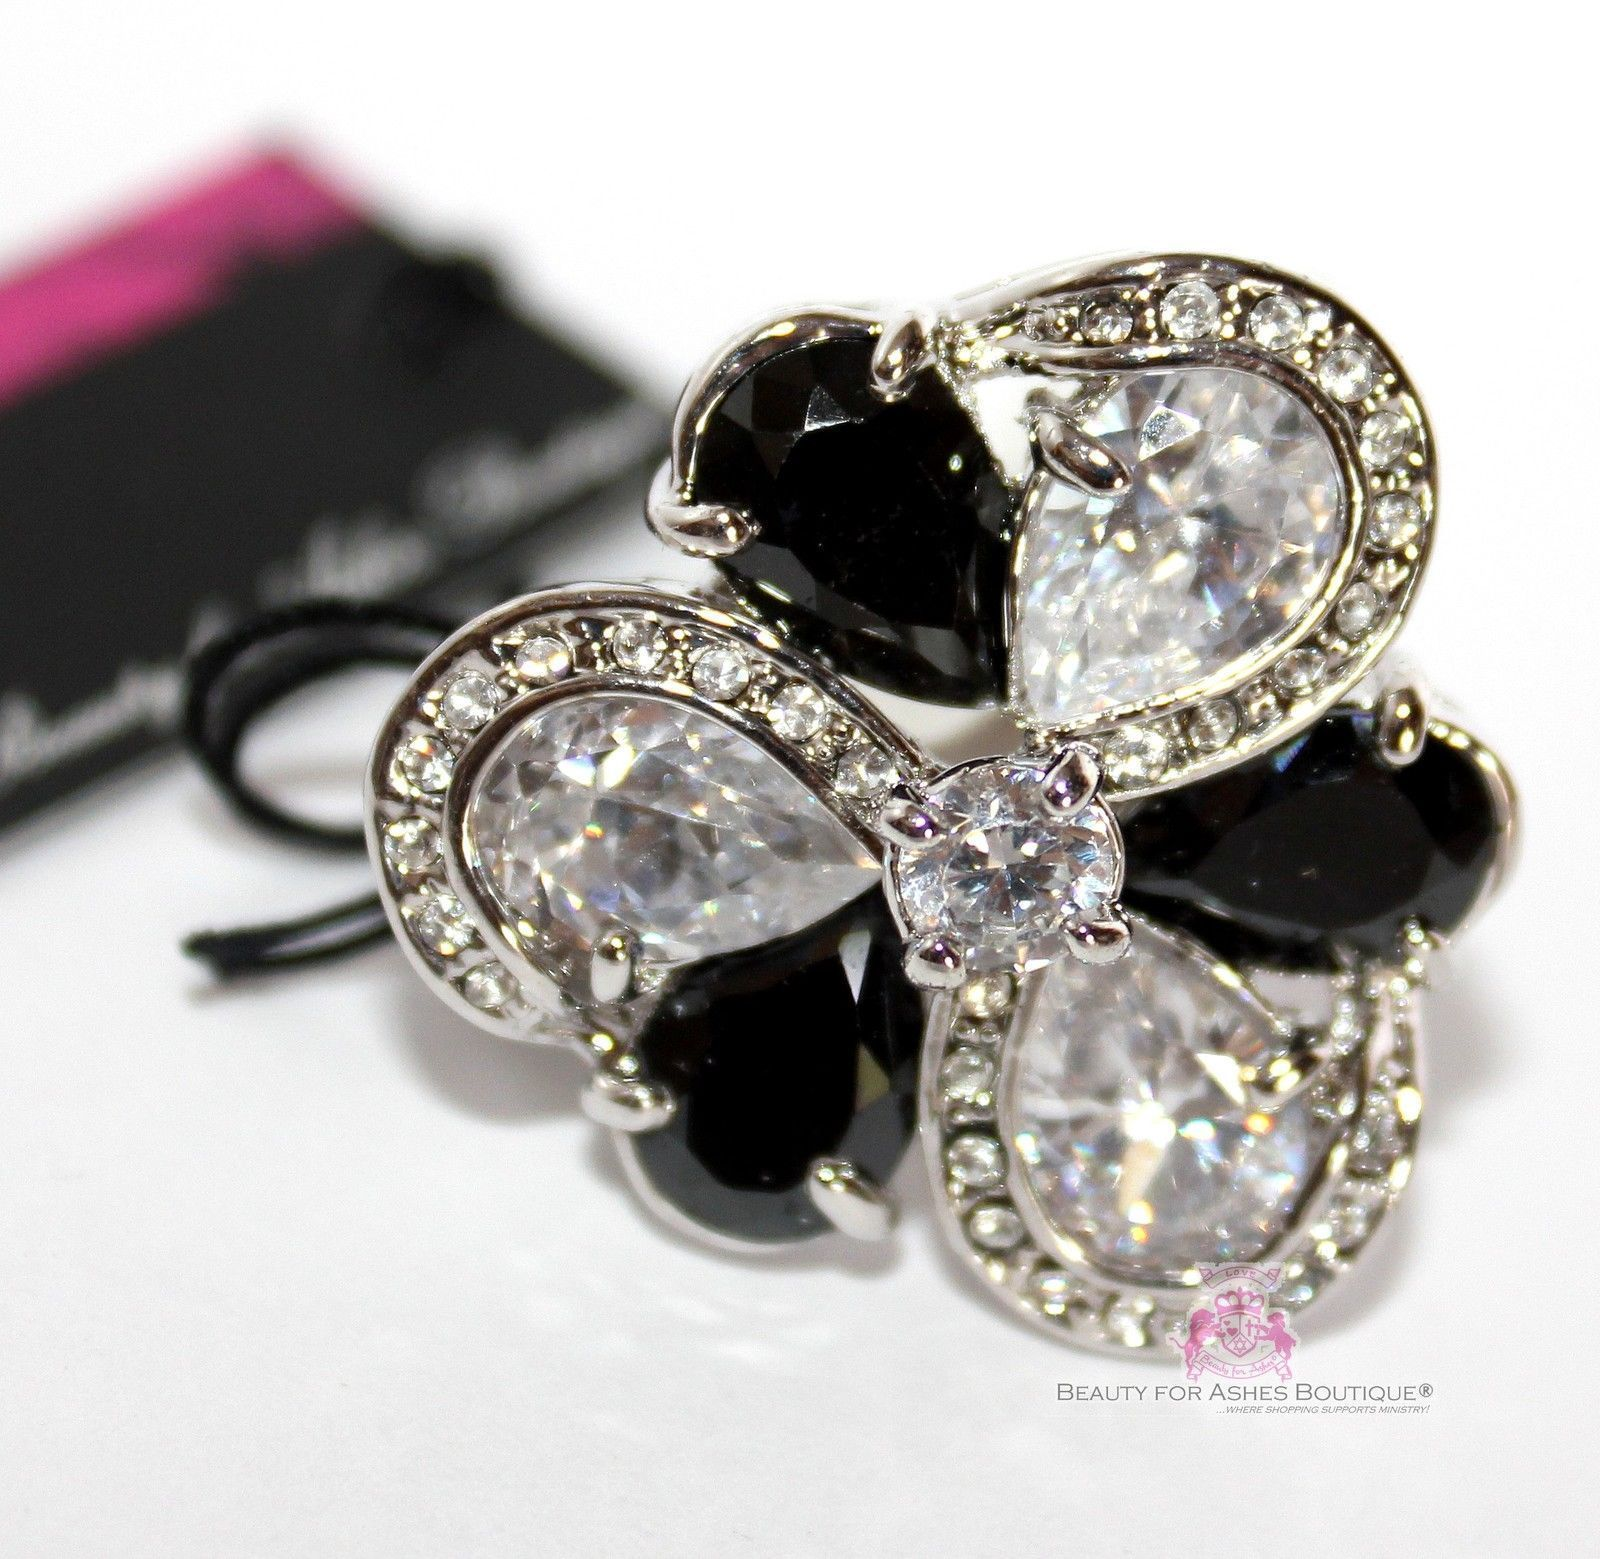 Primary image for Womens Glamour Black Cz White Flower Cubic Zirconia Cocktail Party Chunky Ring 6